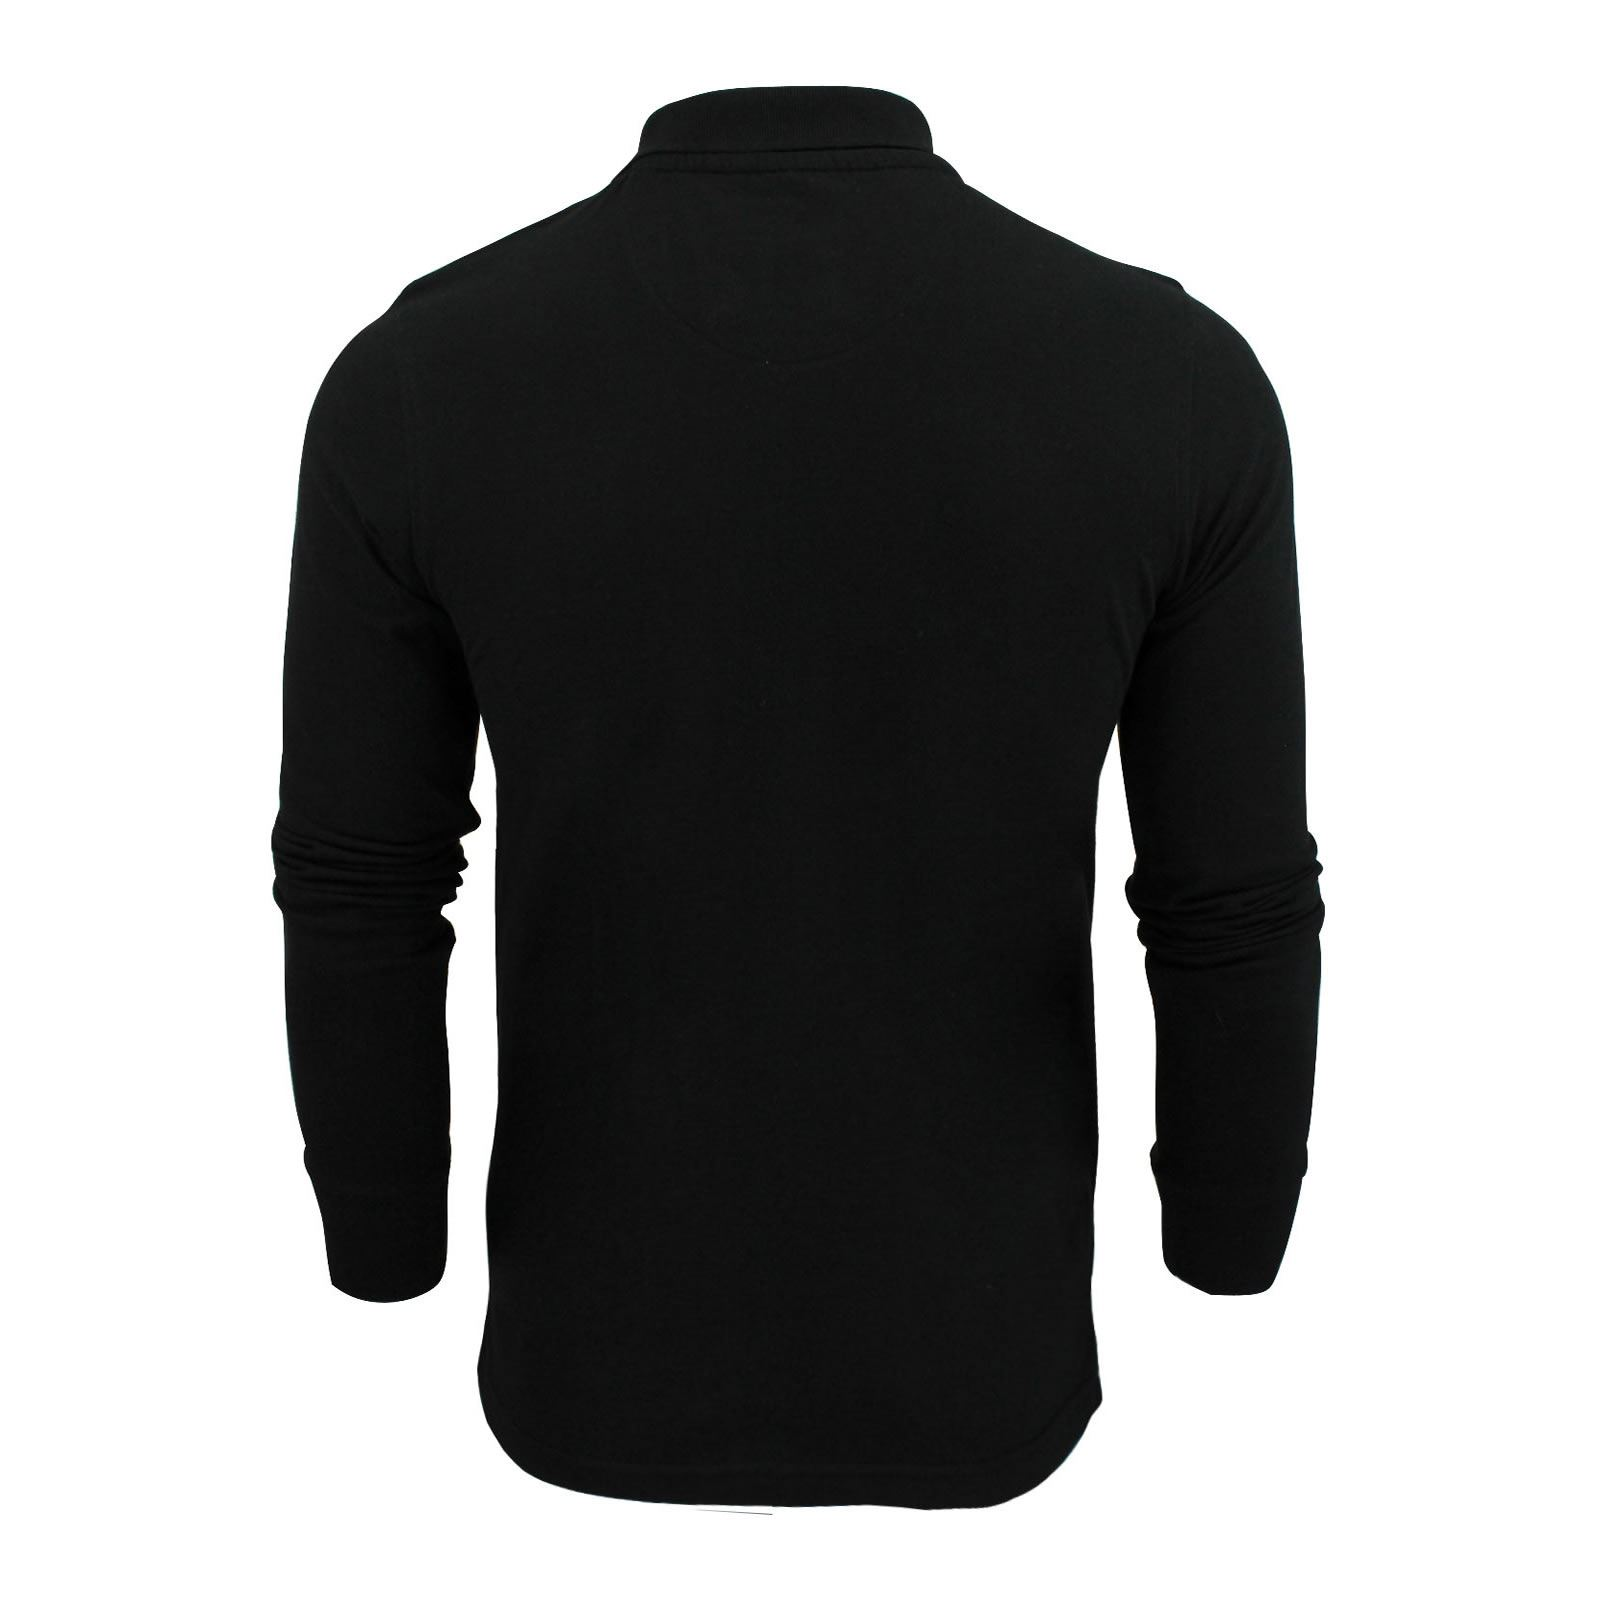 Mens-Polo-T-Shirt-Brave-Soul-Lincoln-Long-Sleeve-Cotton-Pique-Casual-Top thumbnail 3